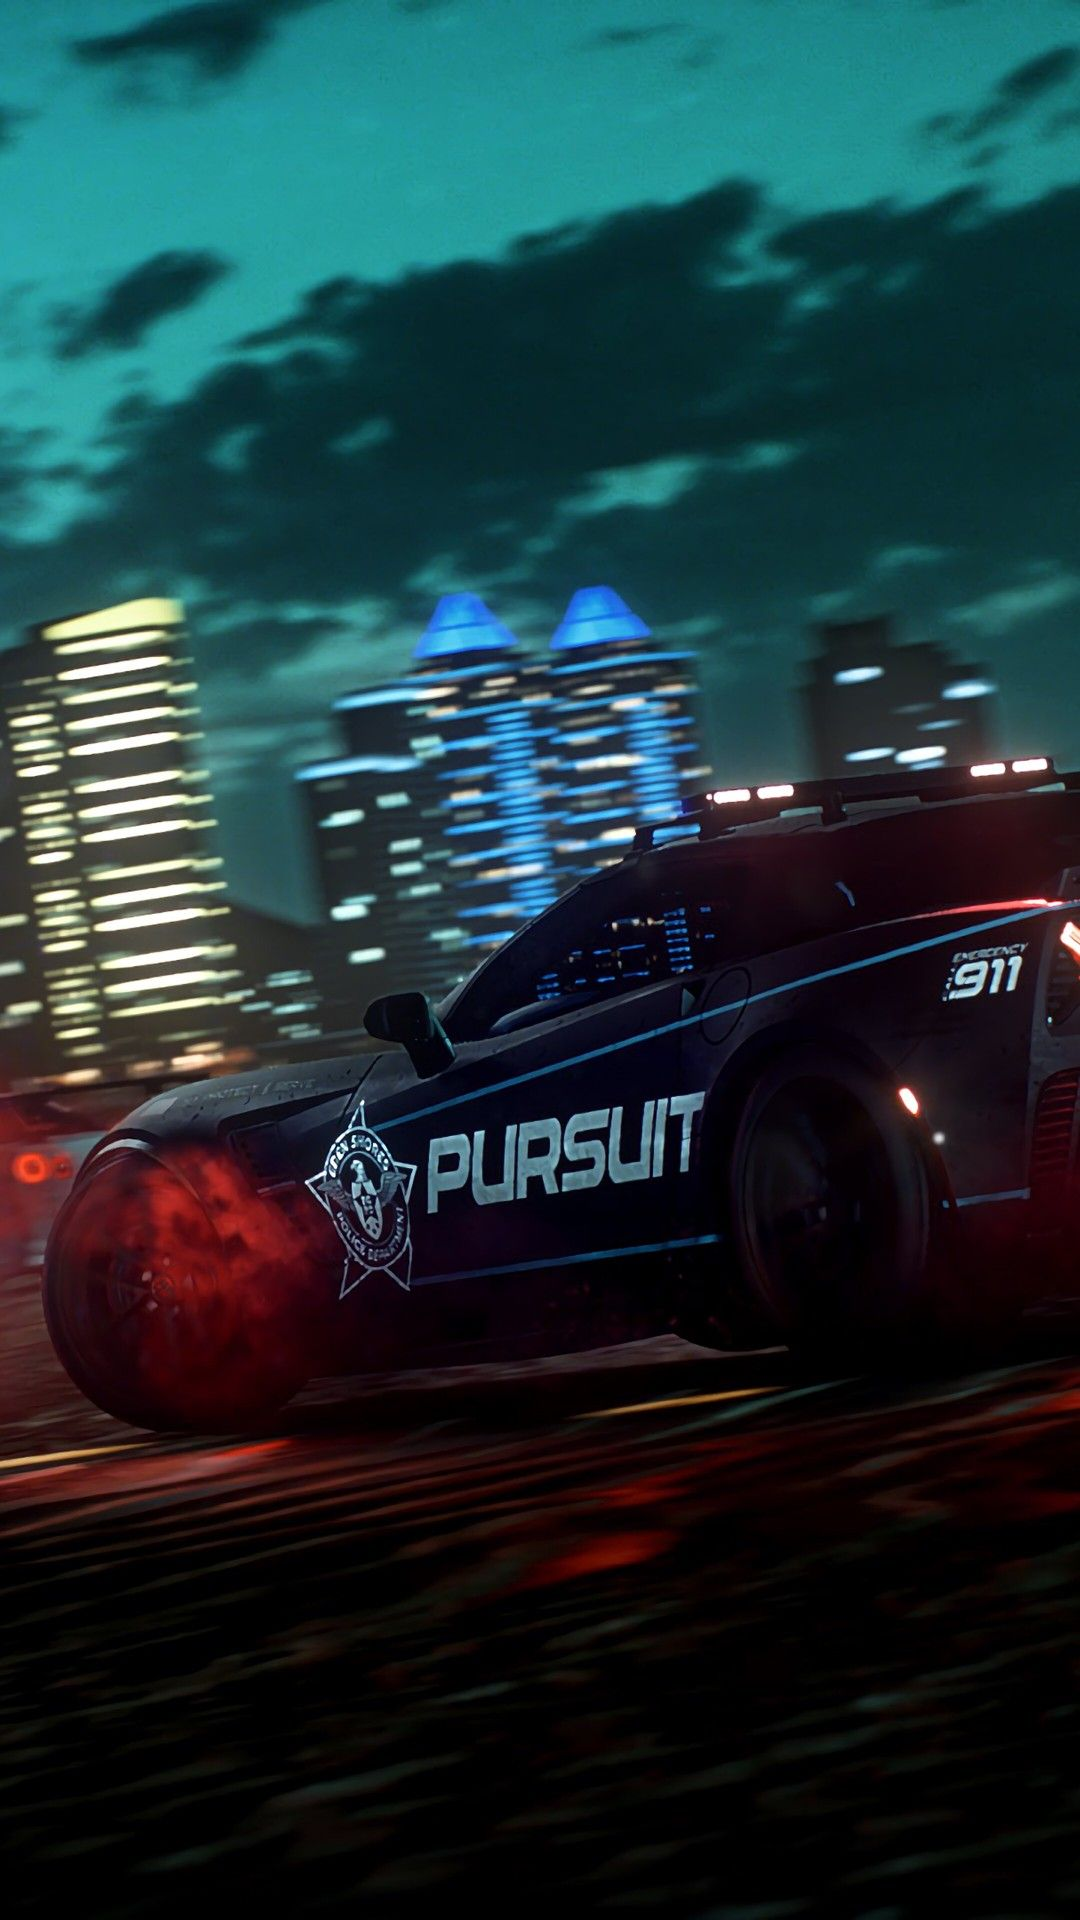 Pin By Shayanz82 On Need For Speed Need For Speed Cars Car Wallpapers Need For Speed